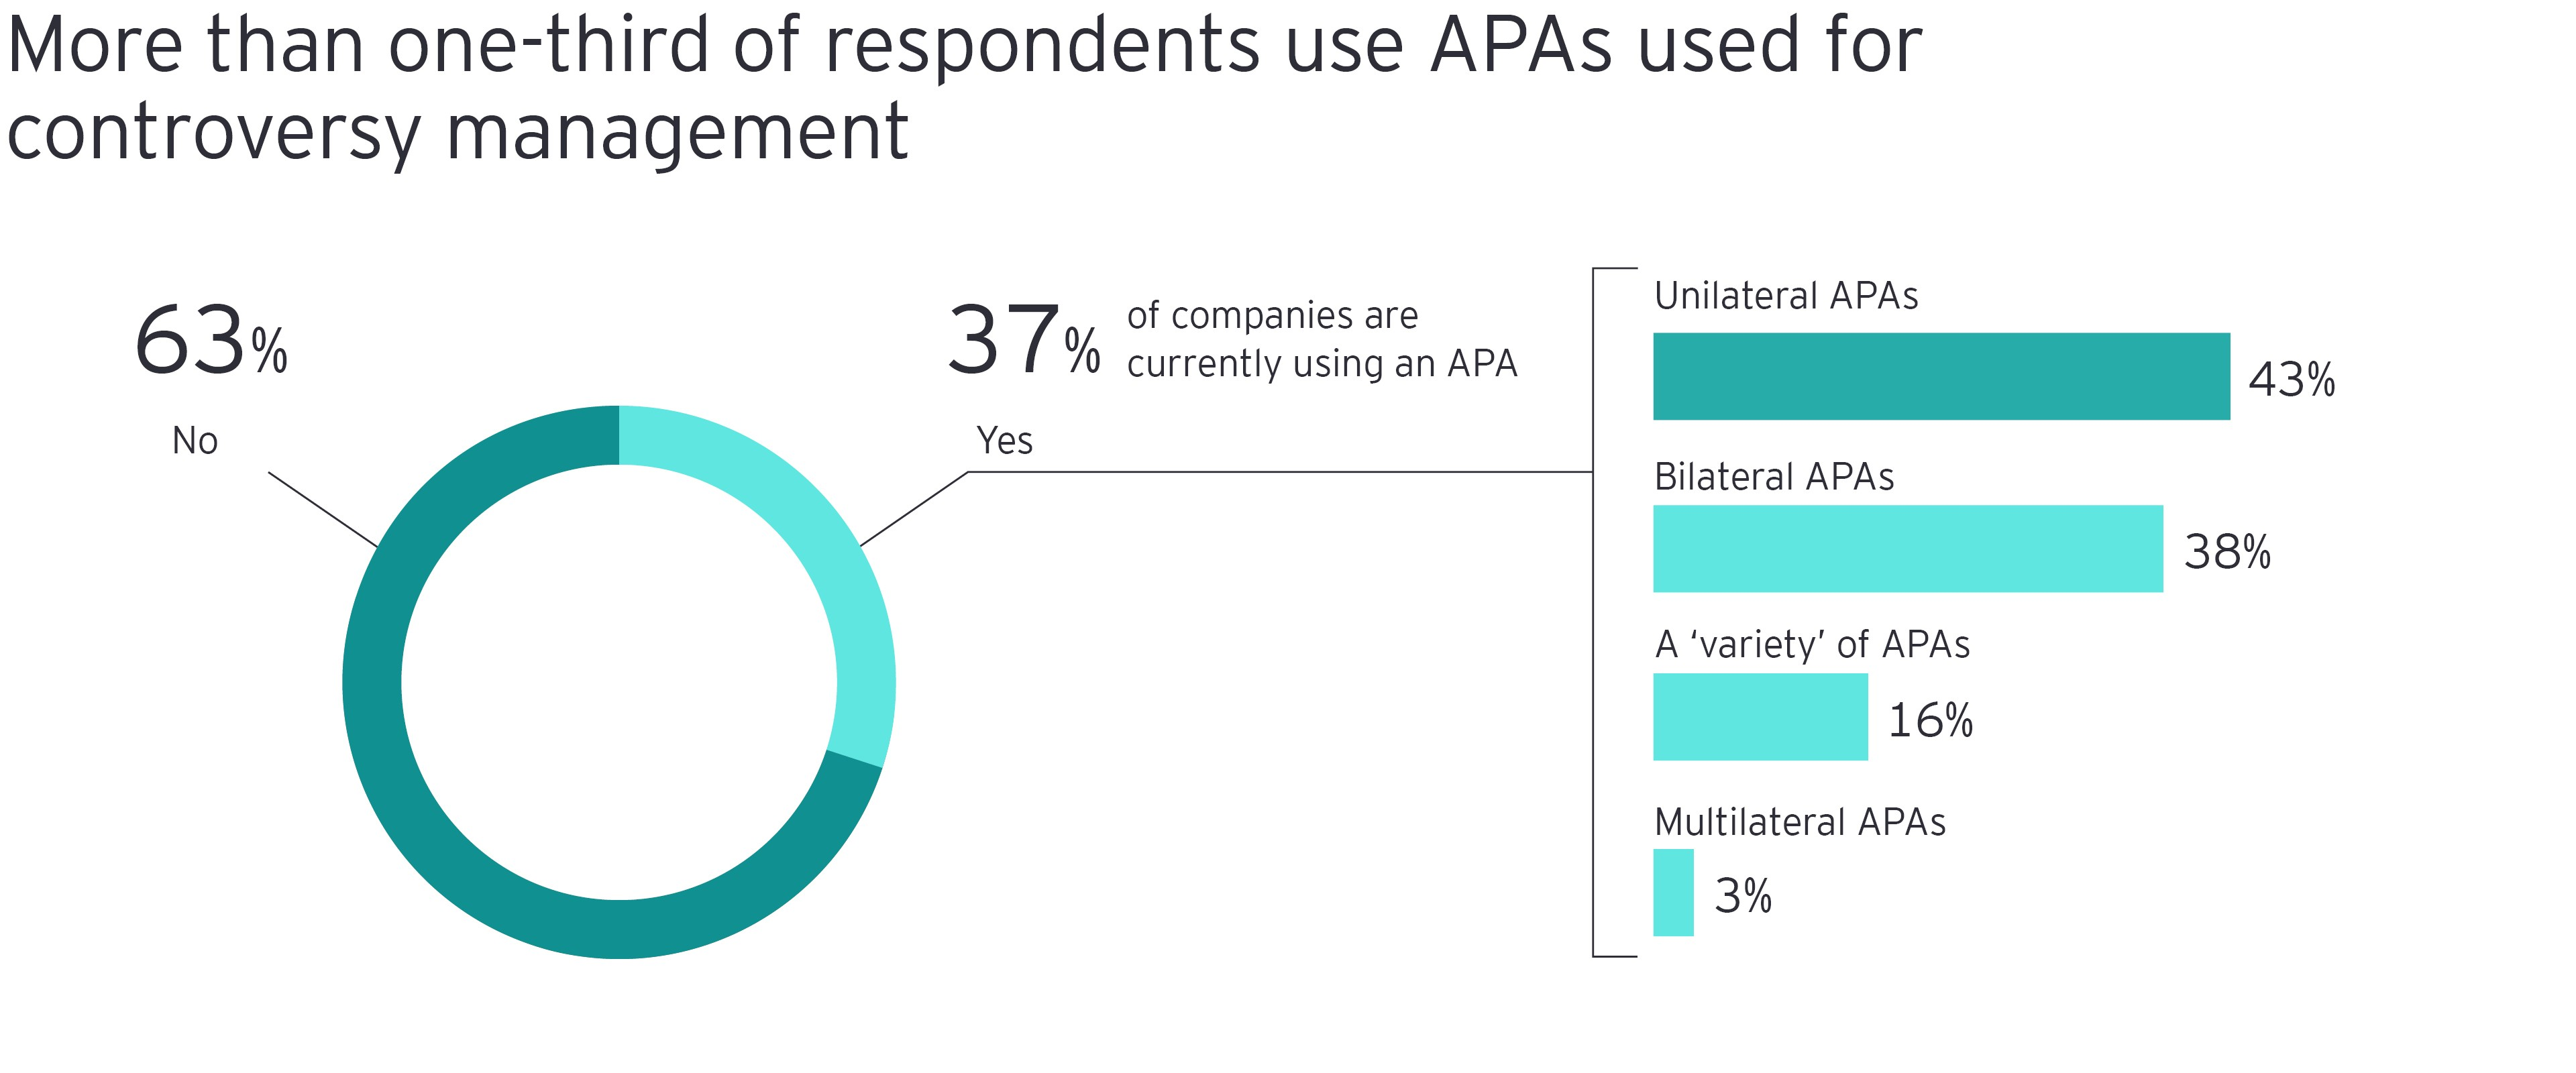 More than one-third of respondents use APAs used for controversy management